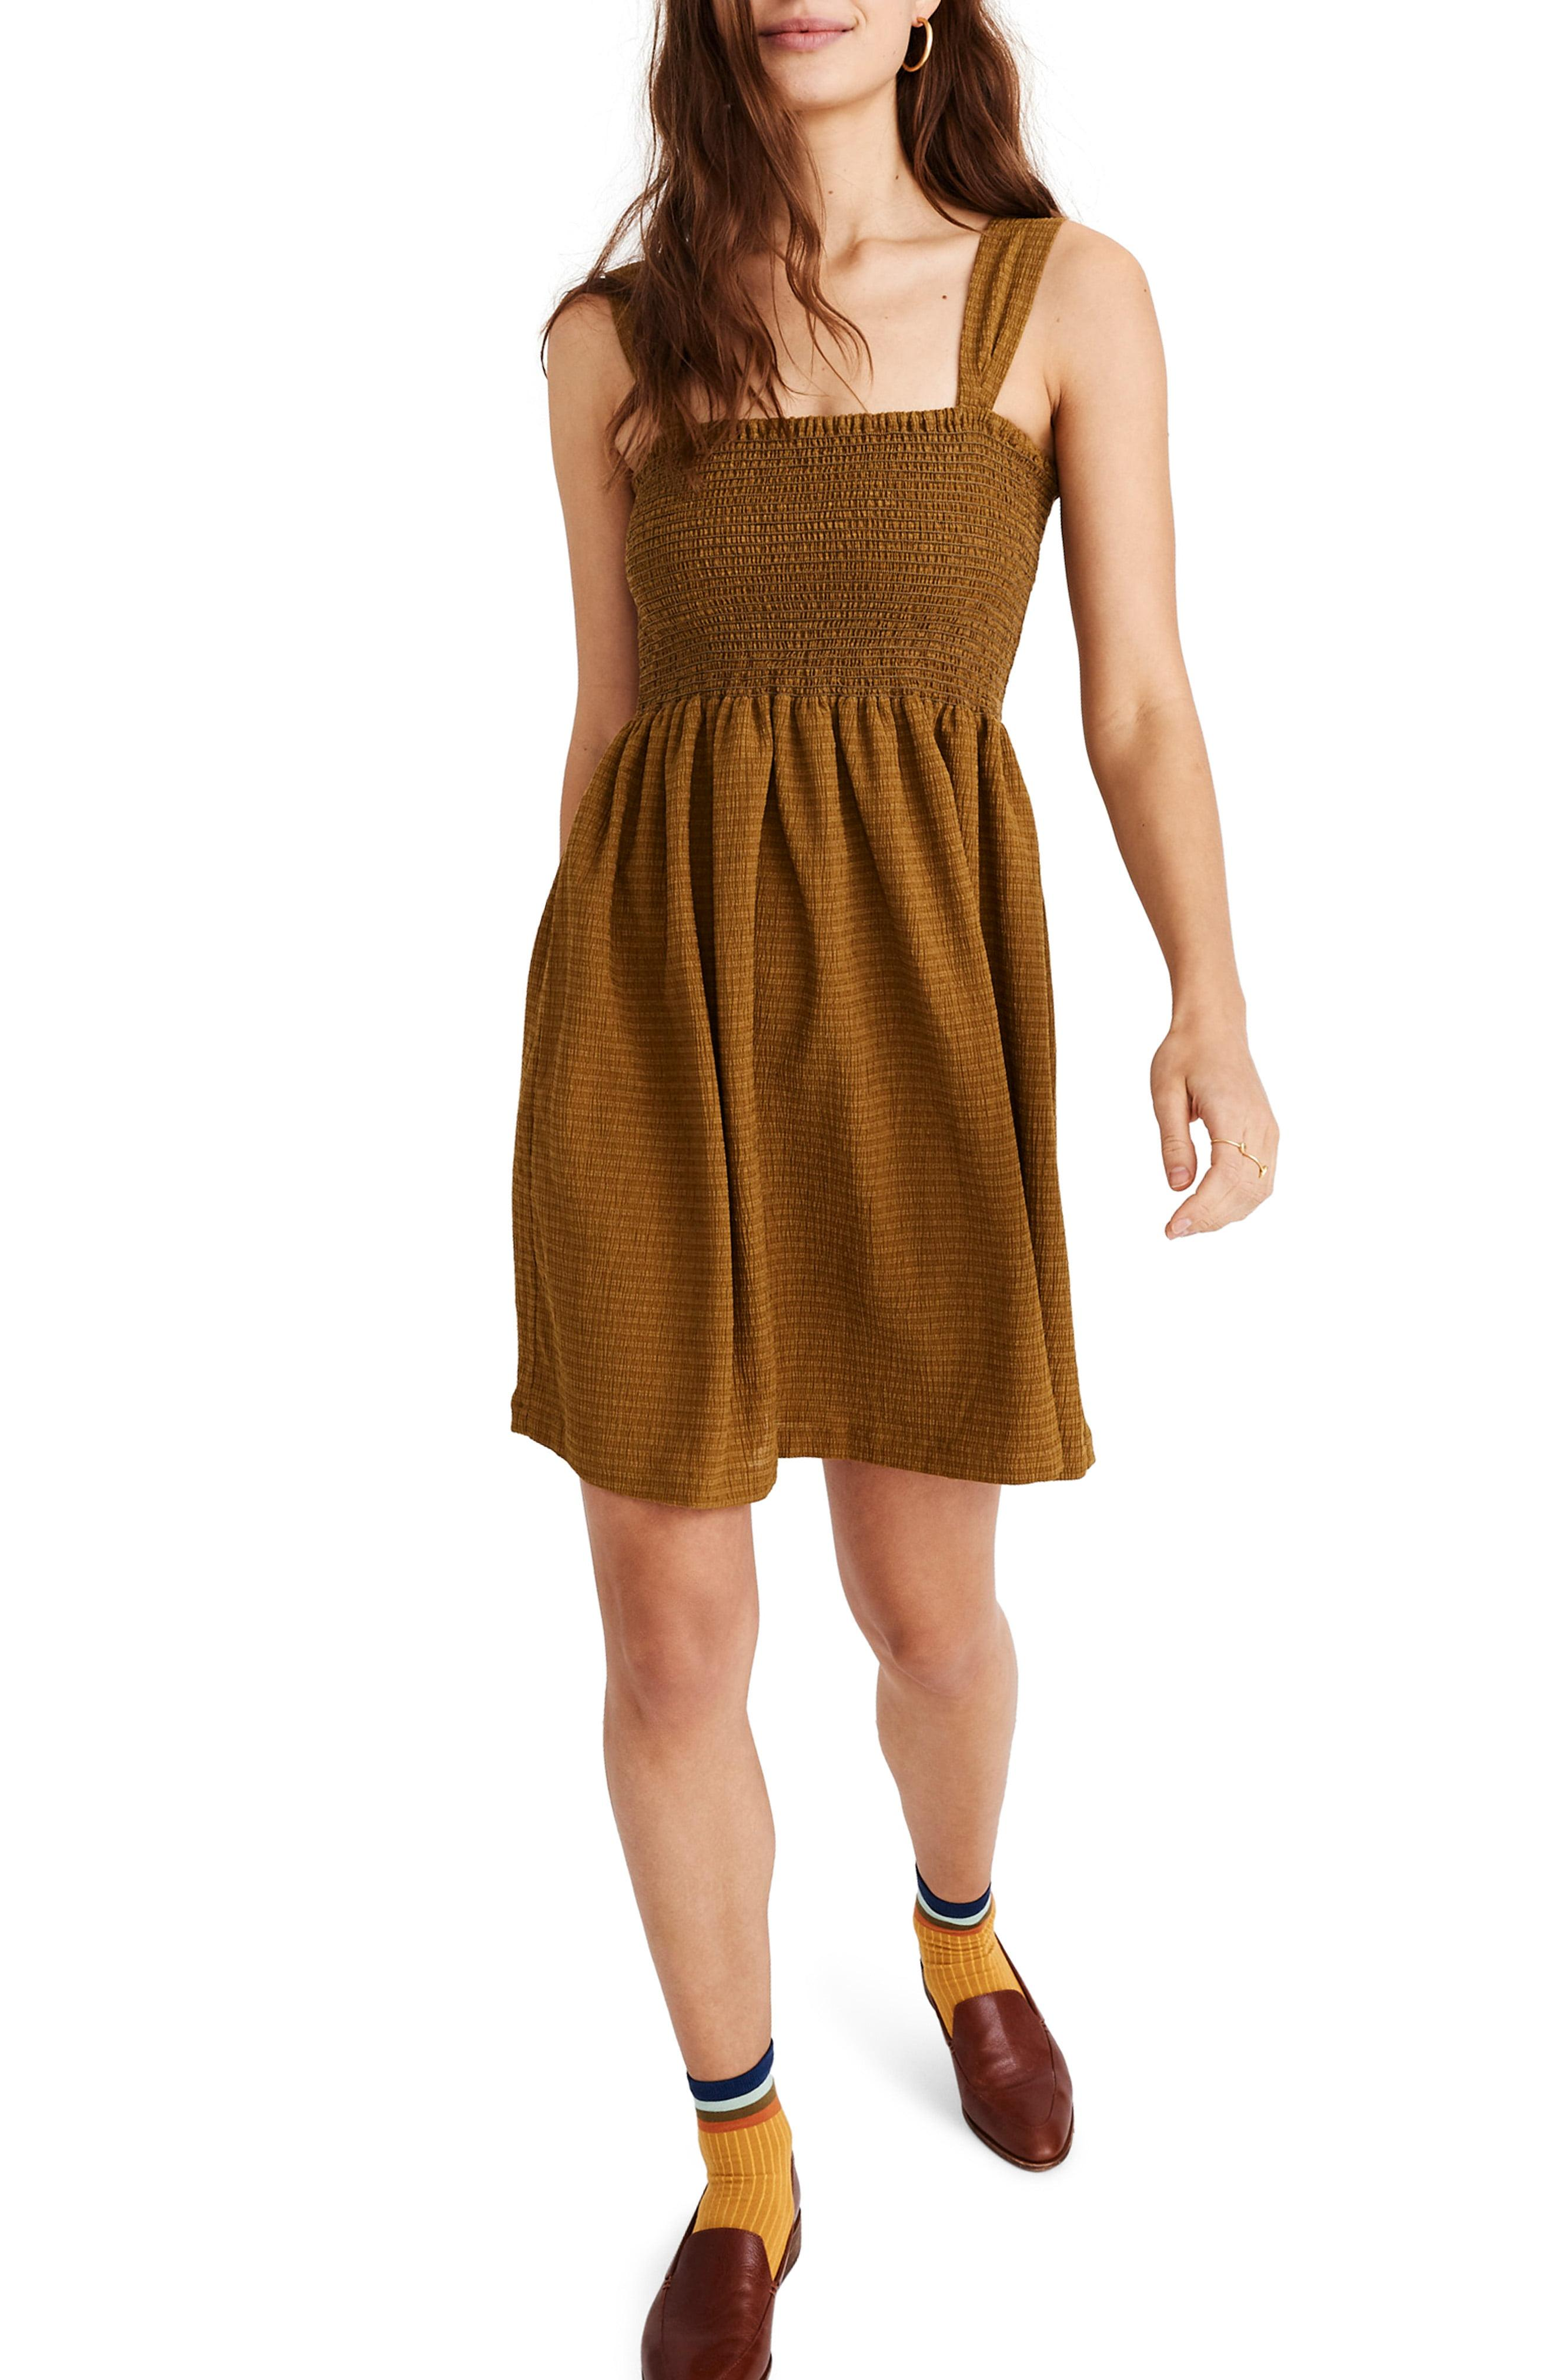 376bb0450d Lyst - Madewell Texture   Thread Smocked Dress in Brown